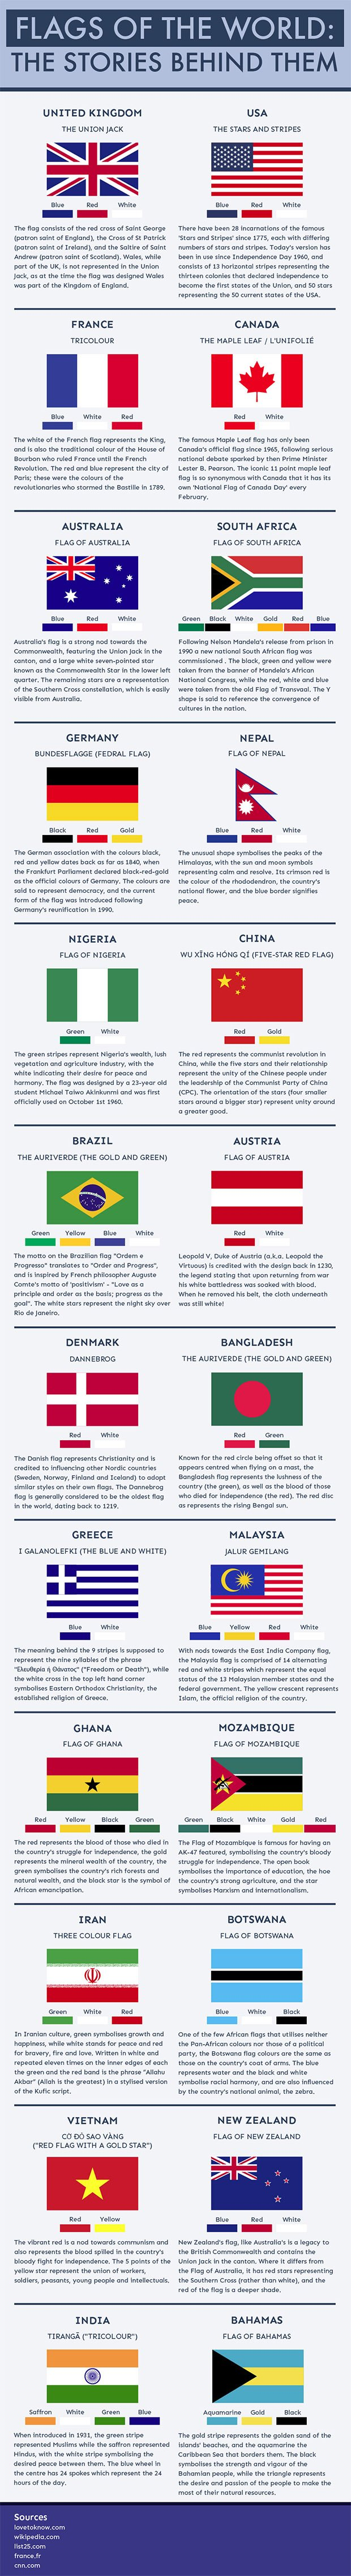 39 Story Behind Flags of the World